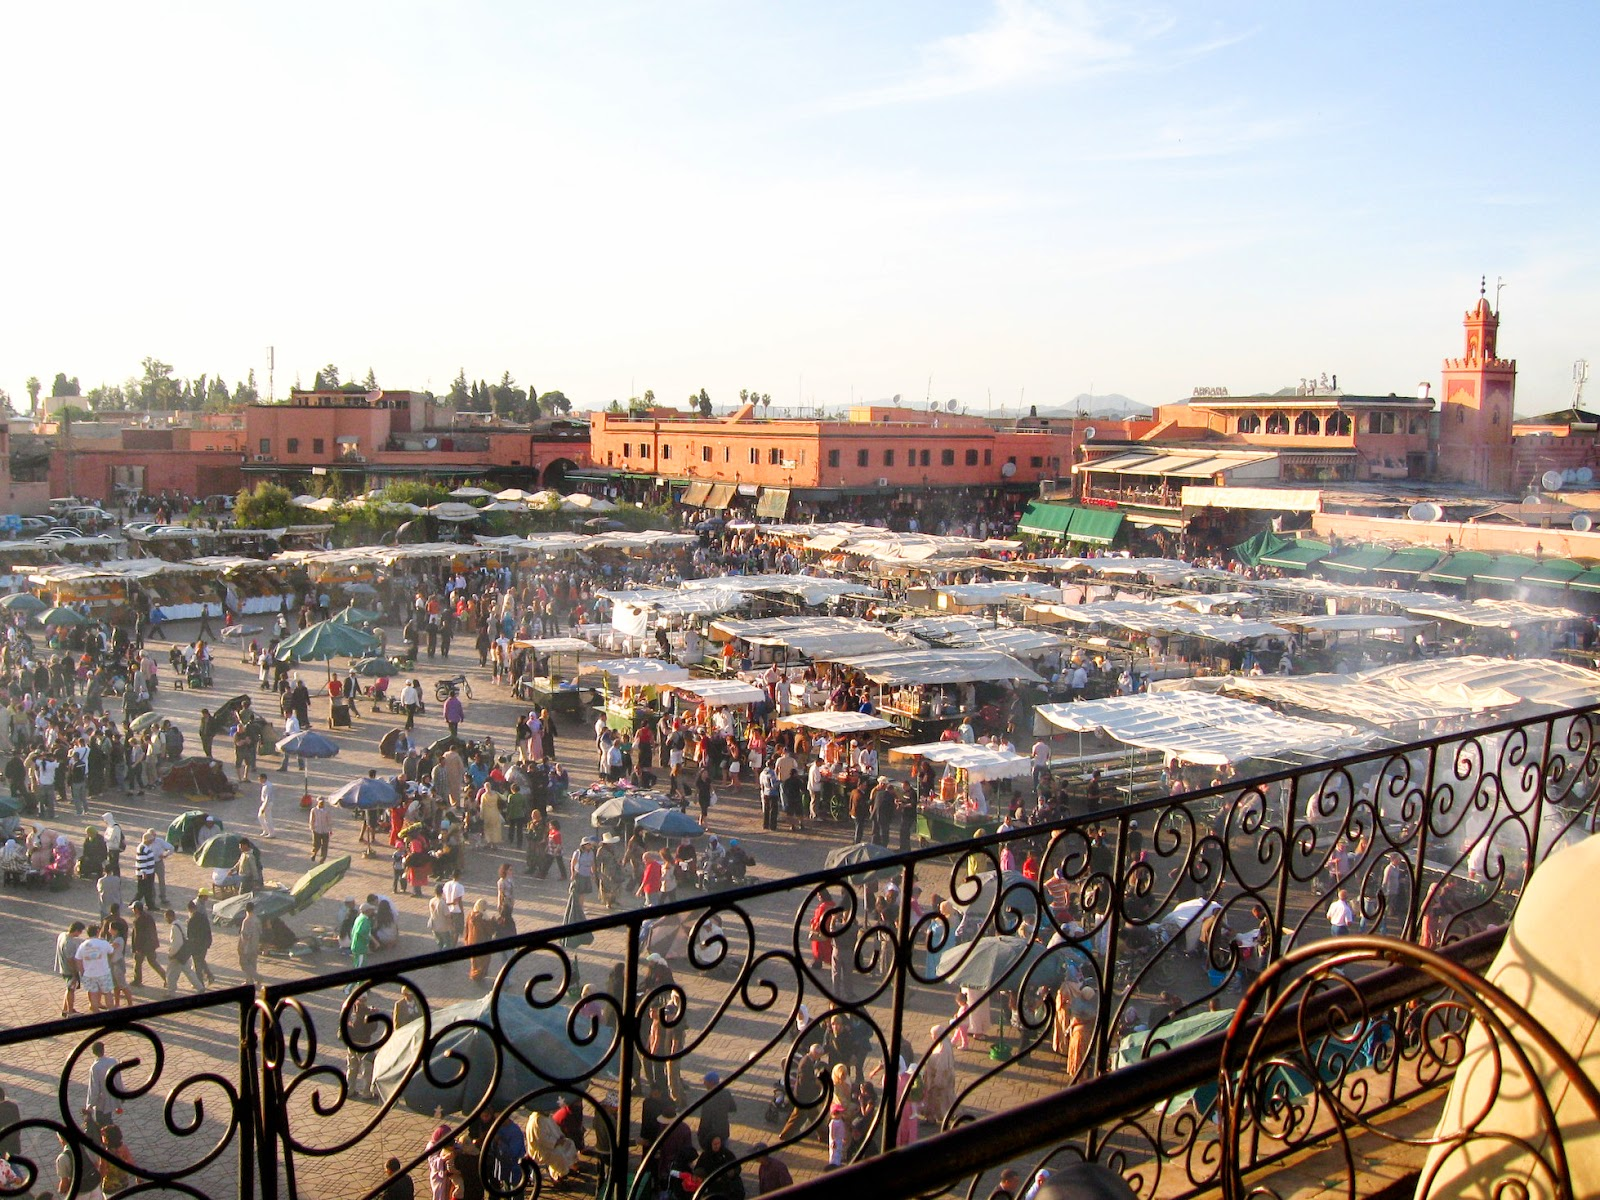 Marrakech top tourist attractions: Djemma El Fna - grand market getting set up for dinner during sunset